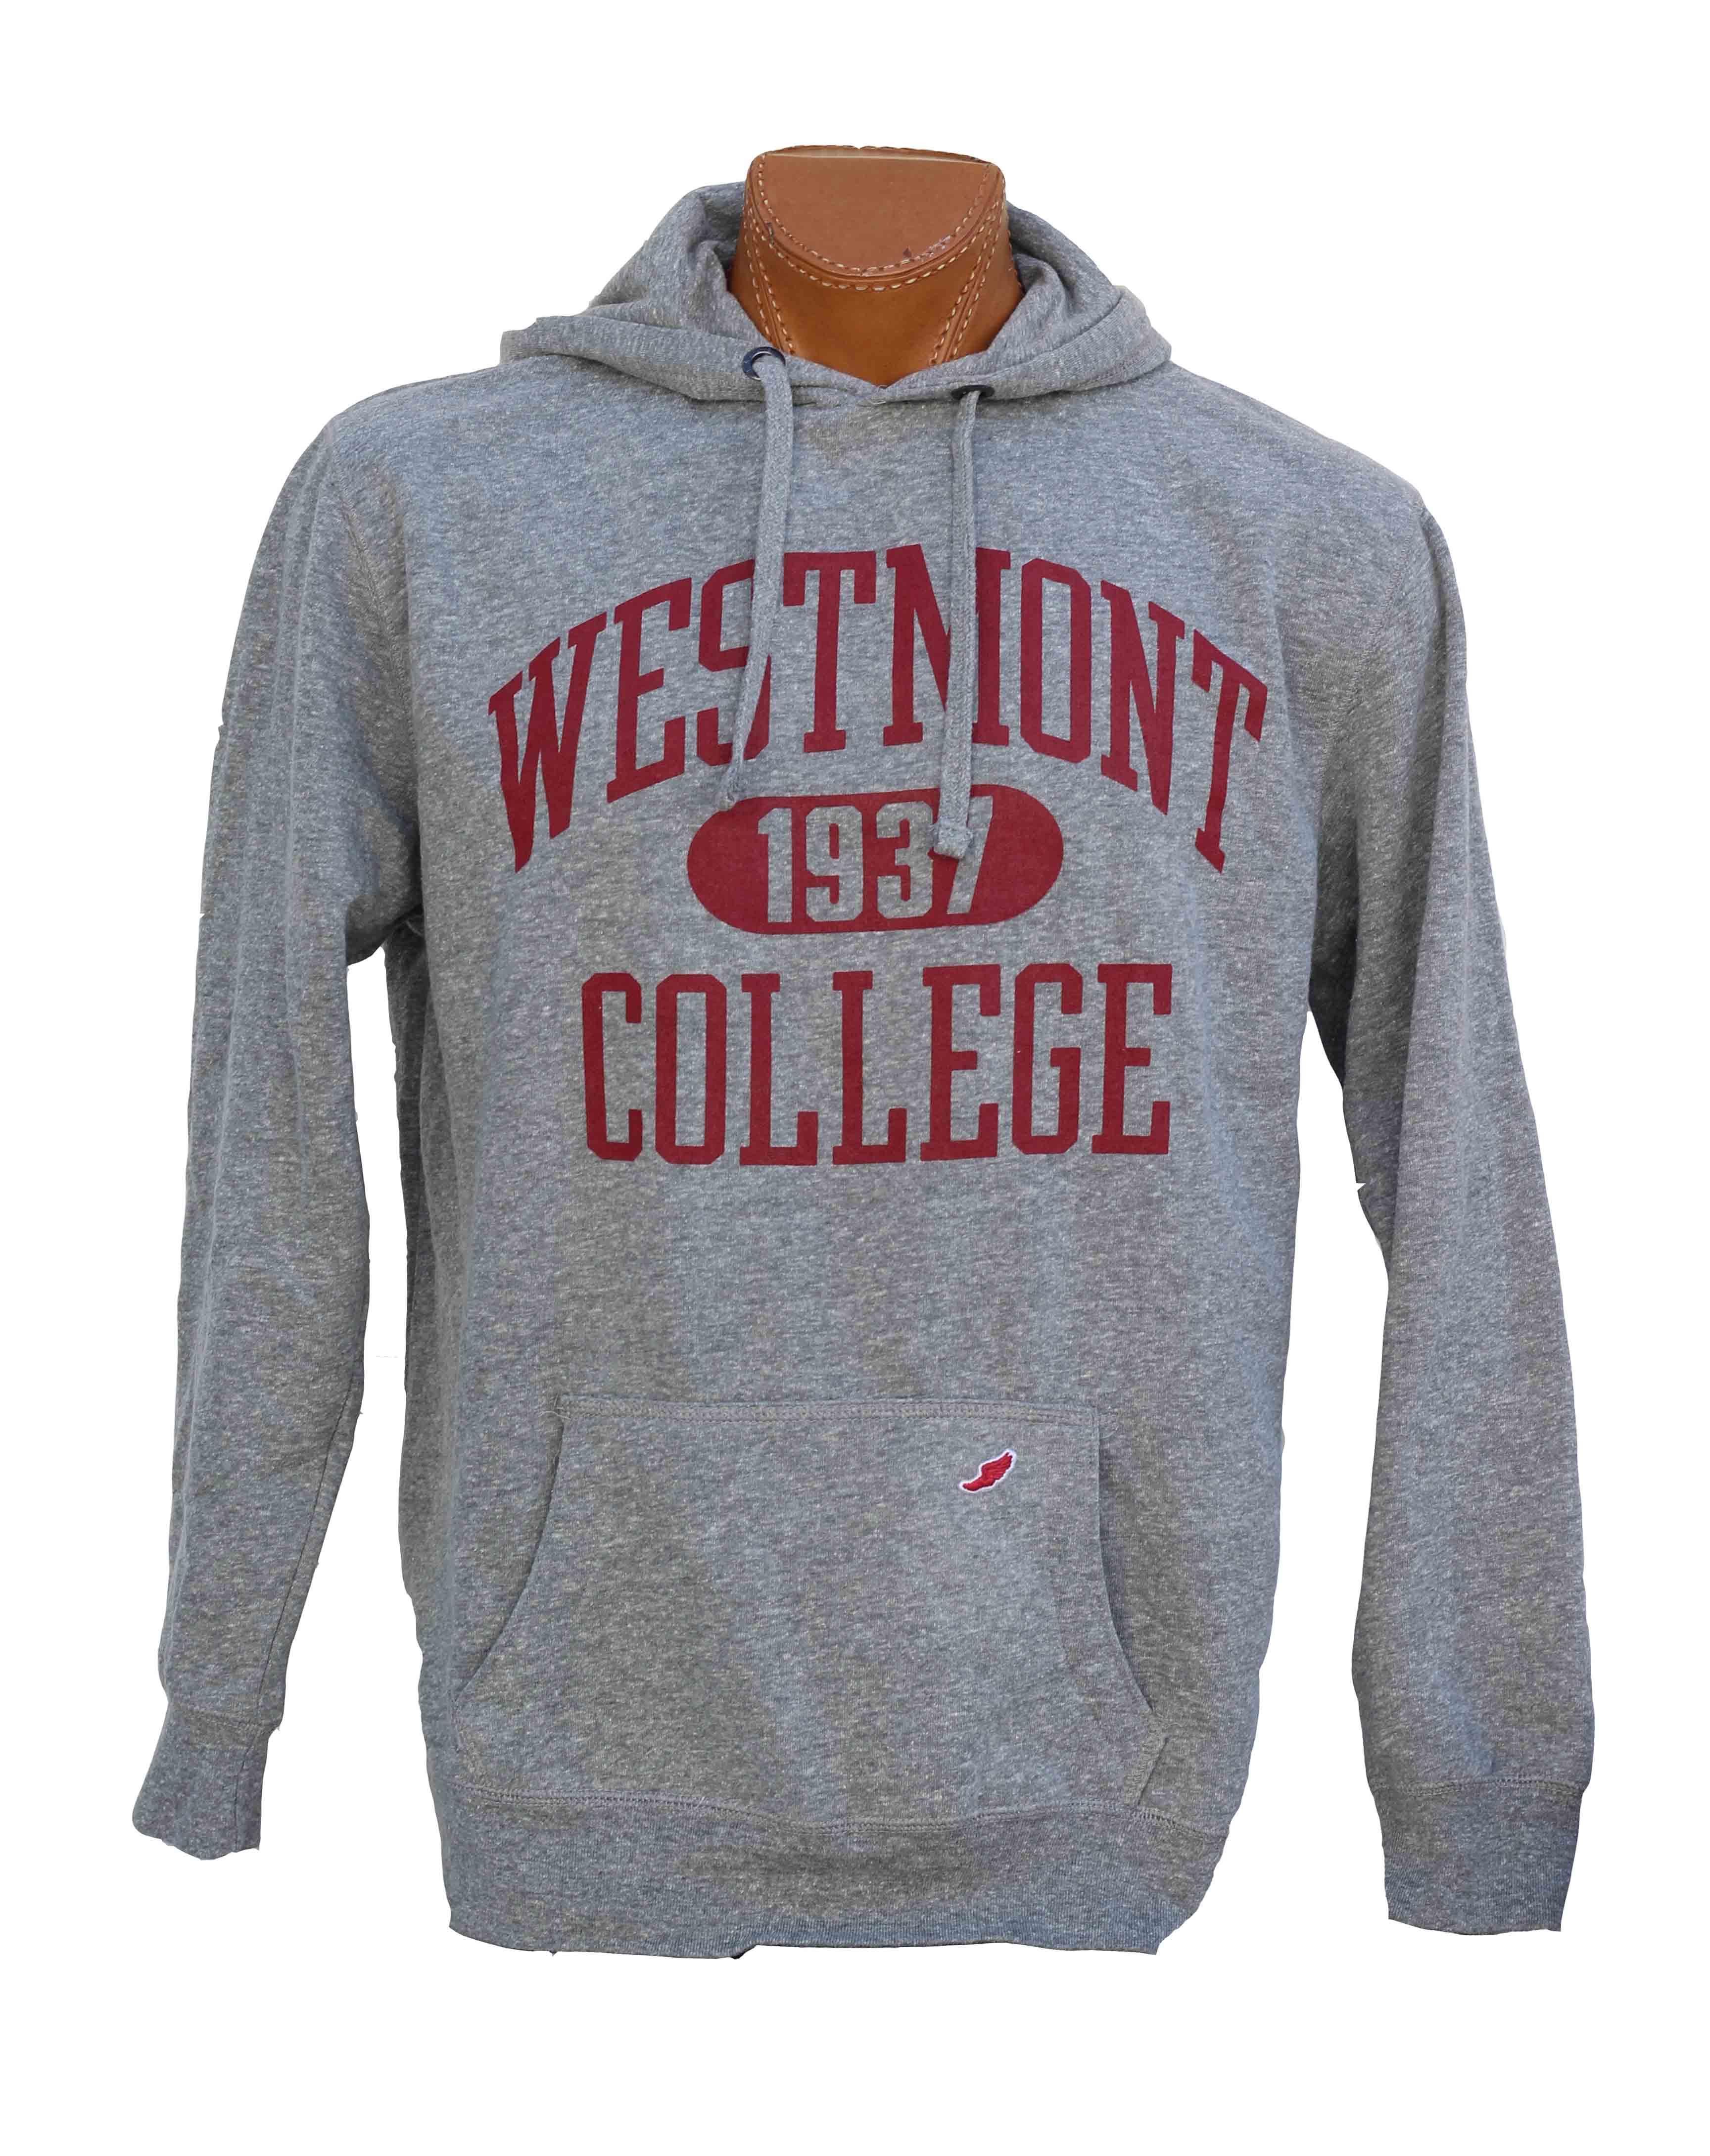 Image for the LEAGUE Westmont 1937  College   Hood product